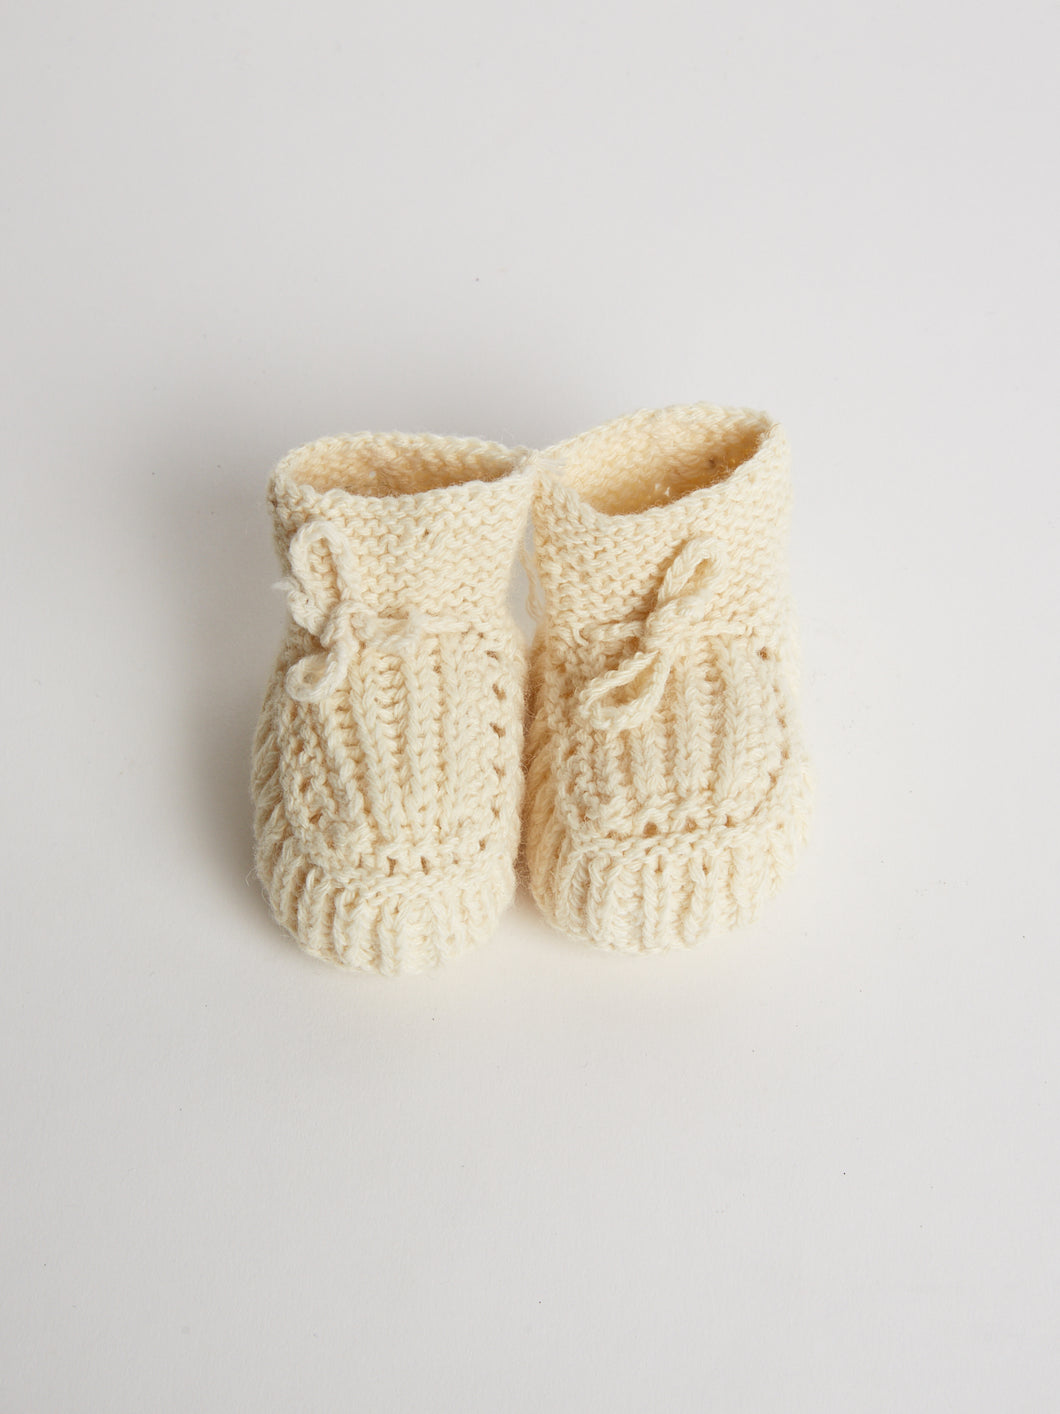 Hand Knitted Soft Wool Baby Shoes